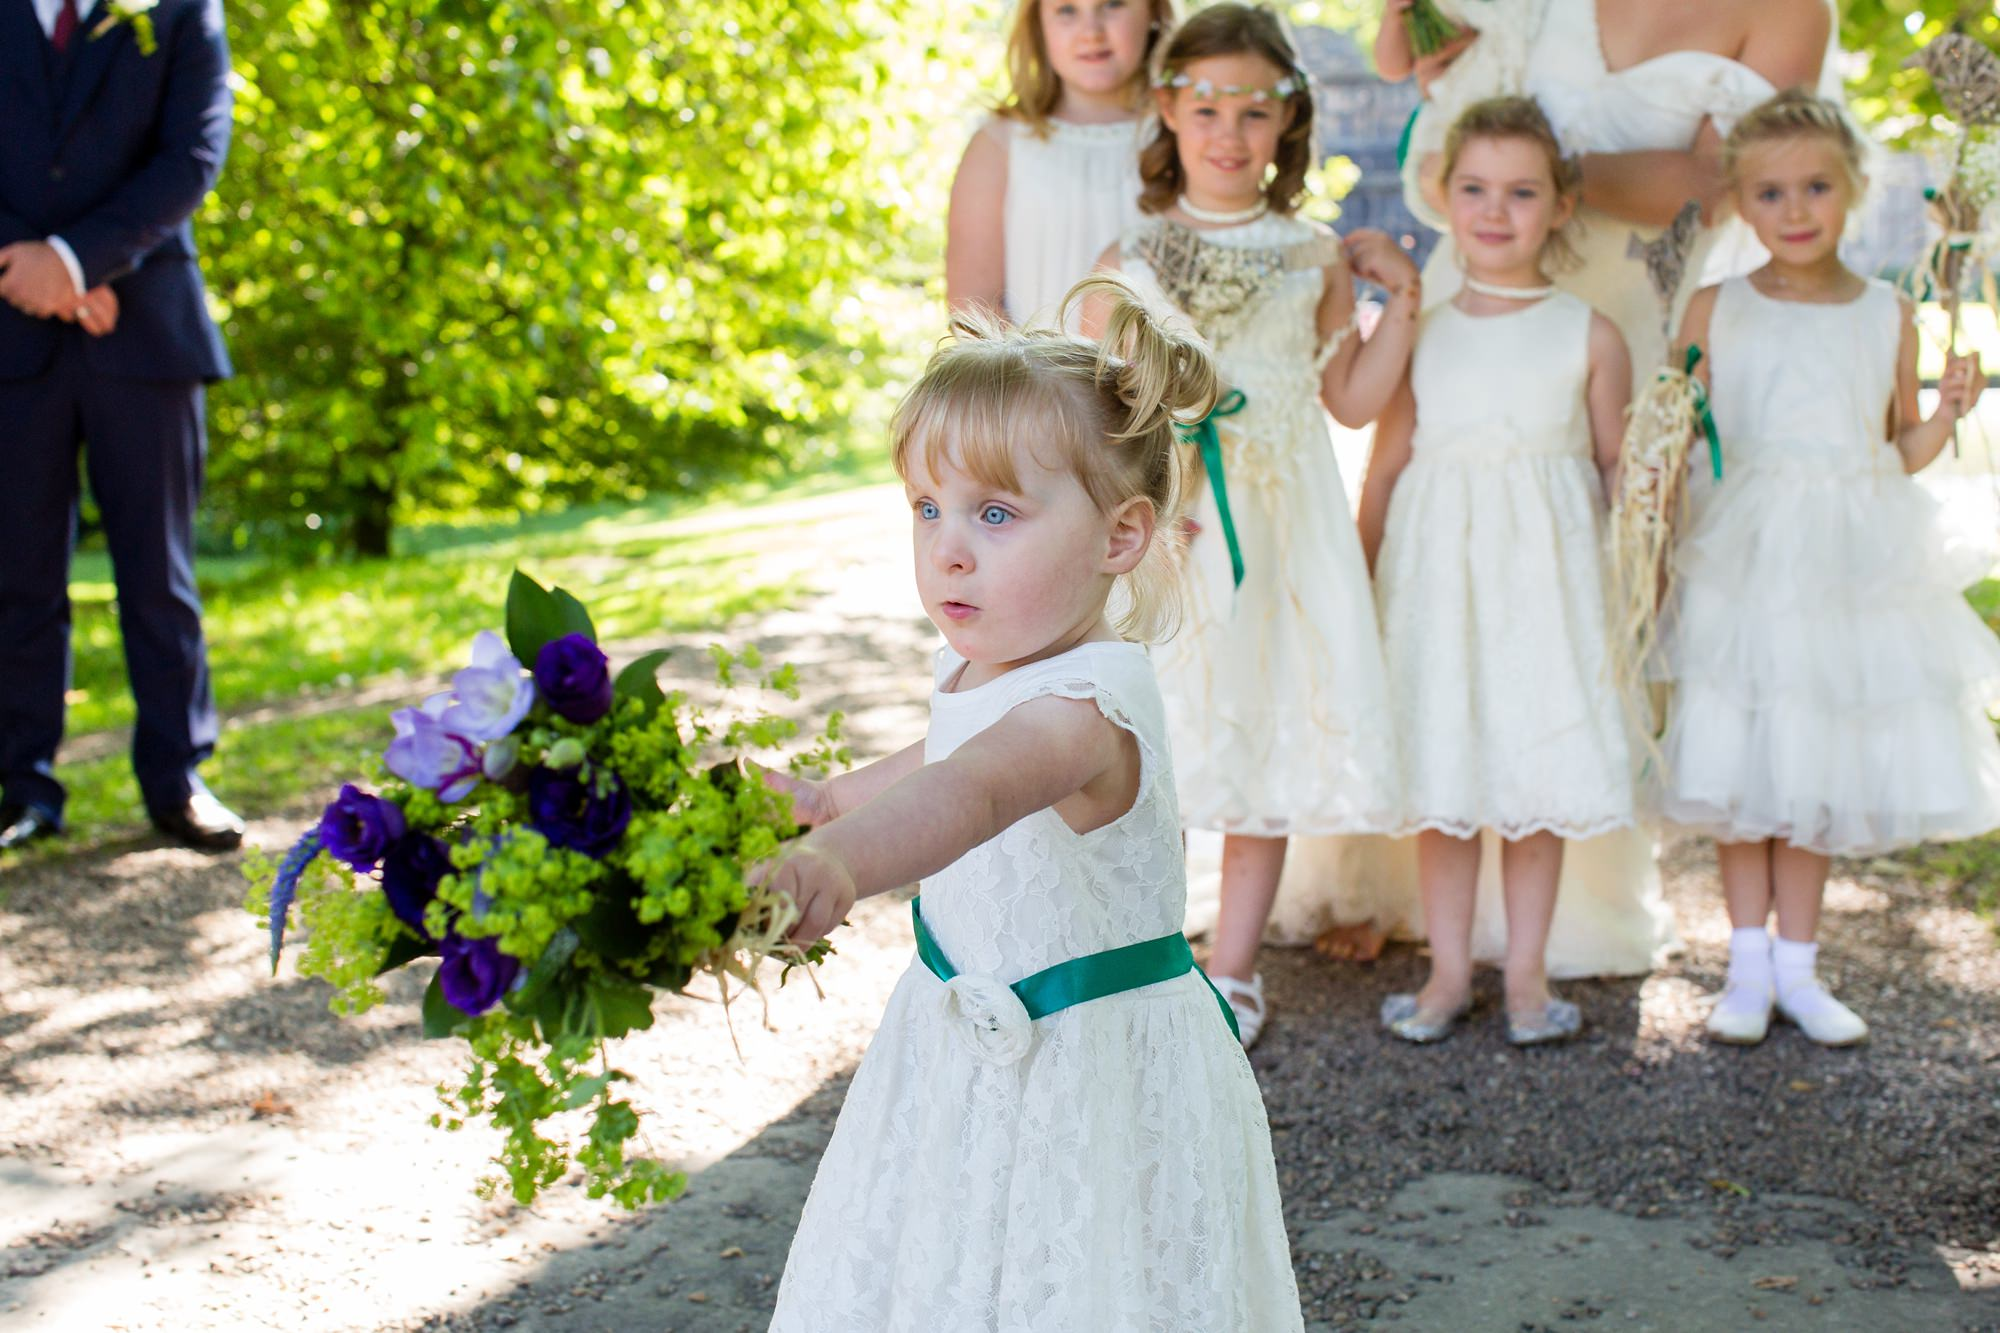 Runaway flower girl during photos Tips for Children at Weddings